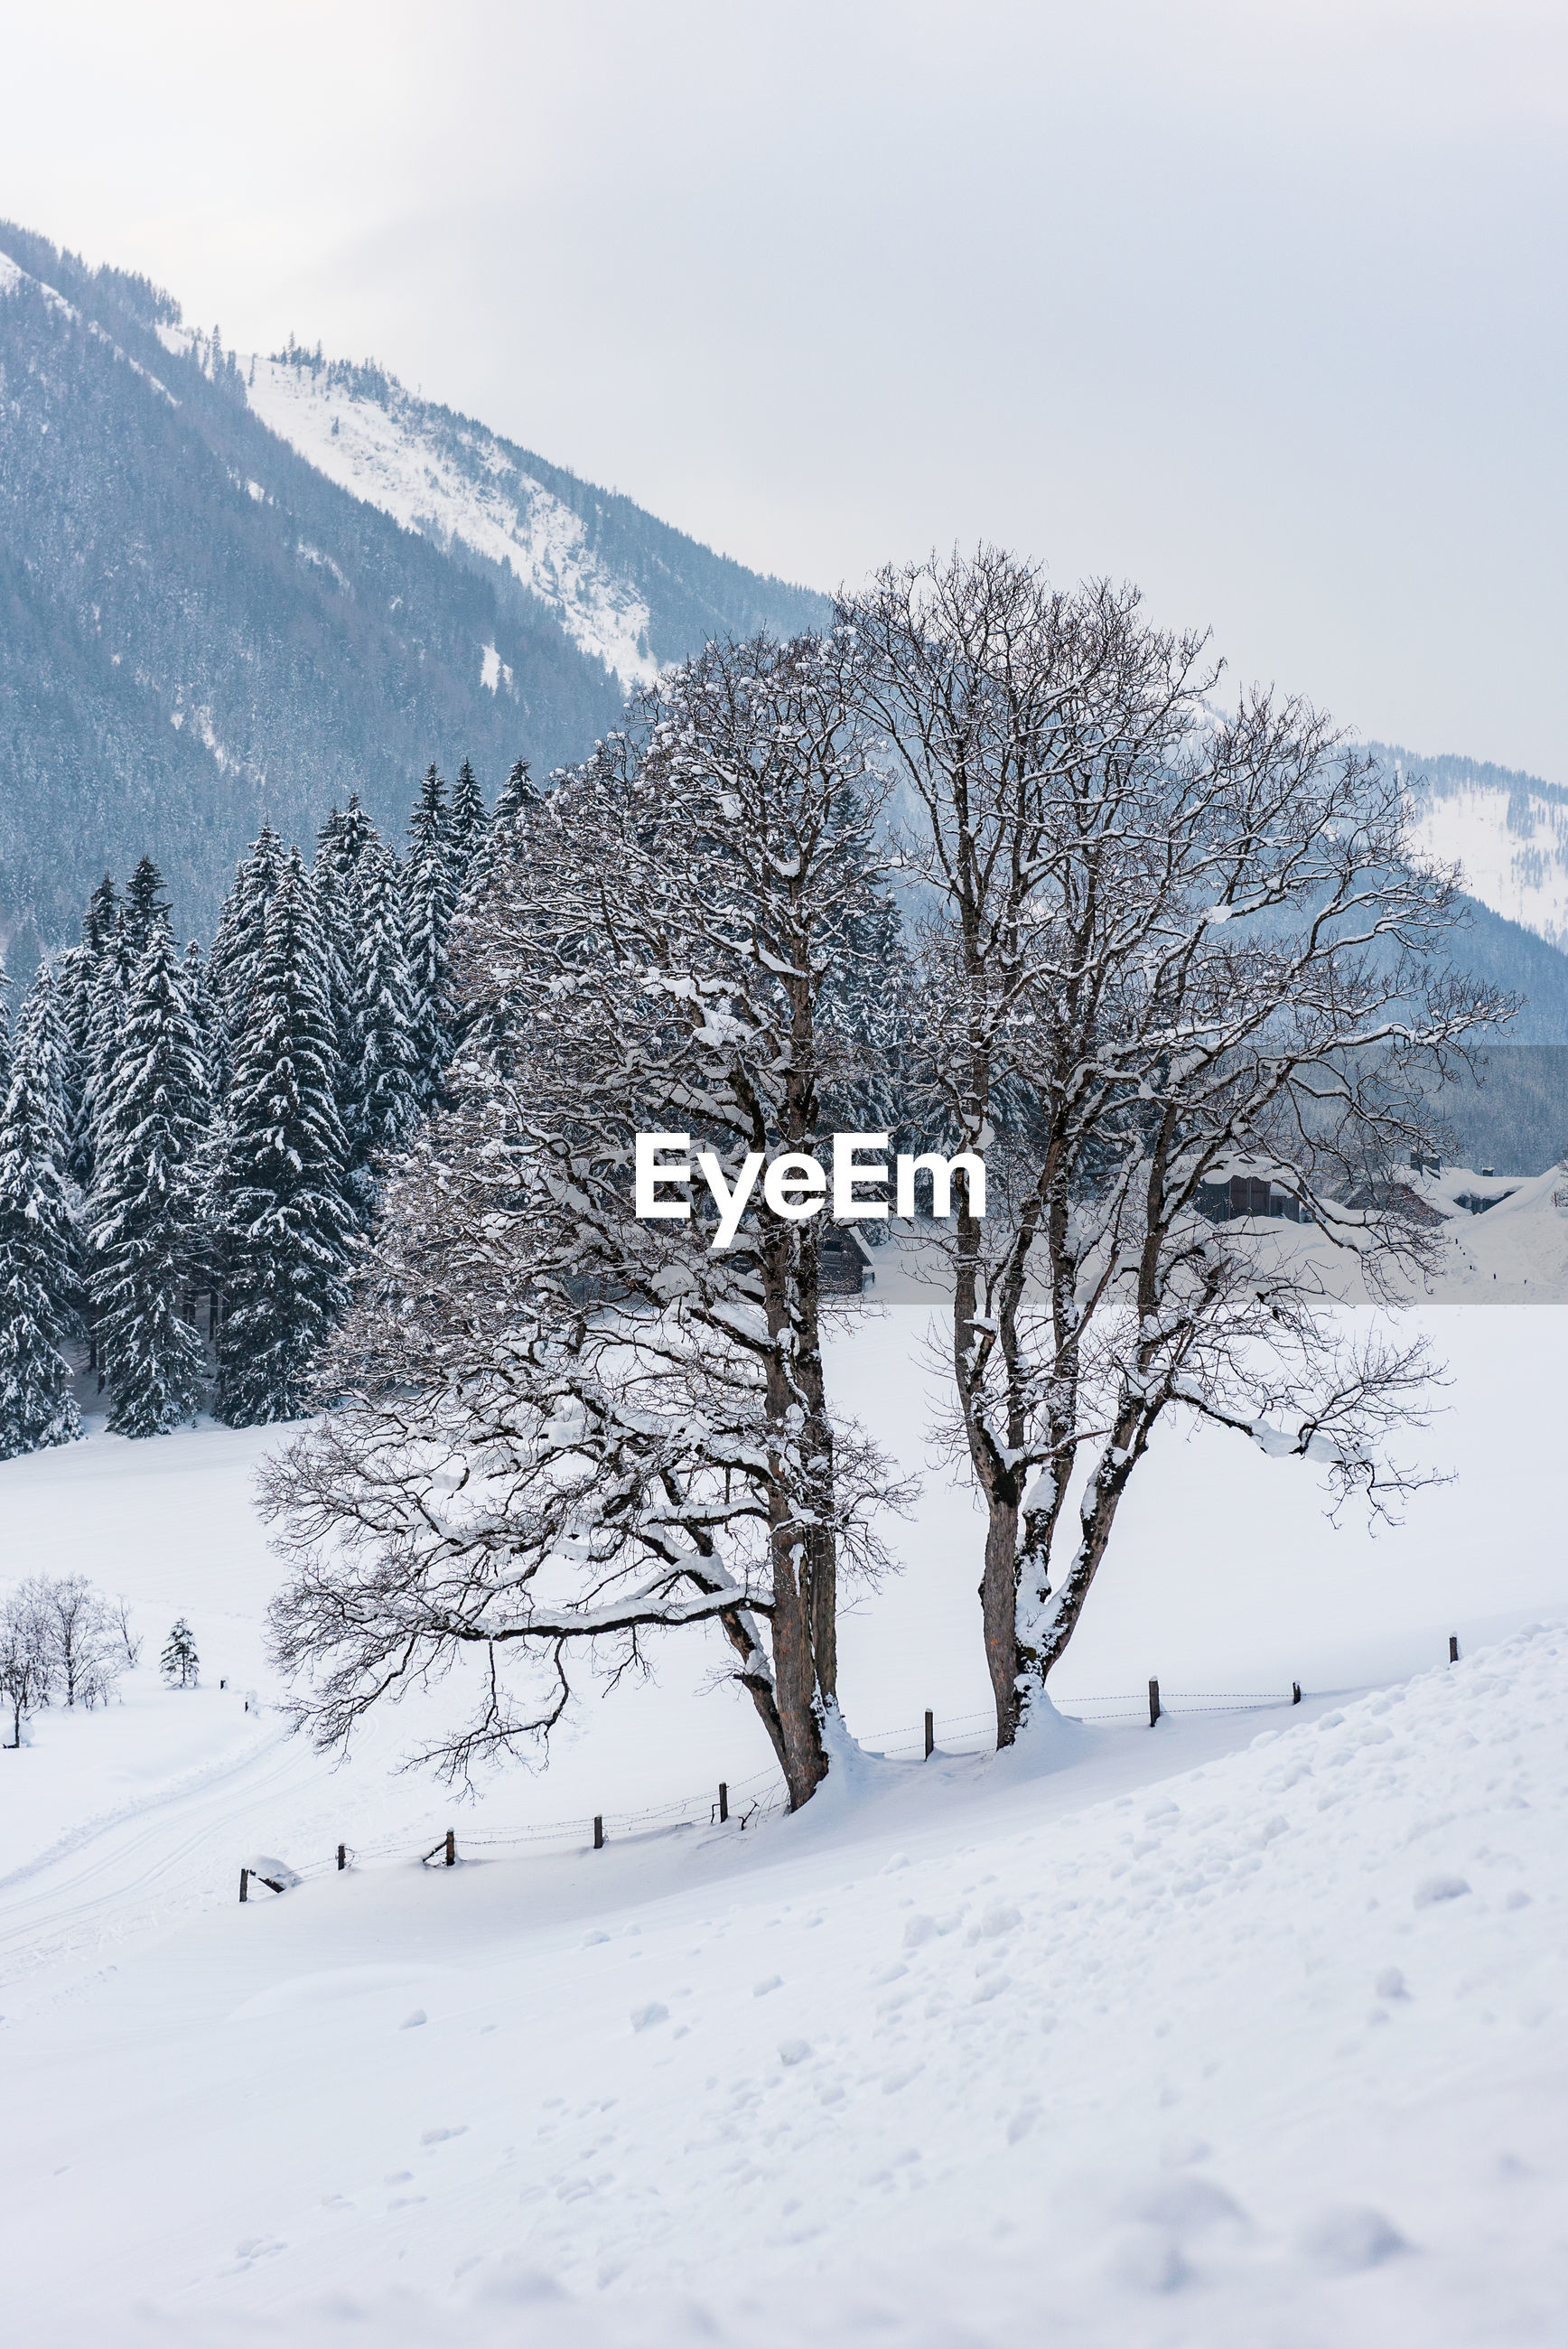 Twin trees and winter mountain landscape in the alps.